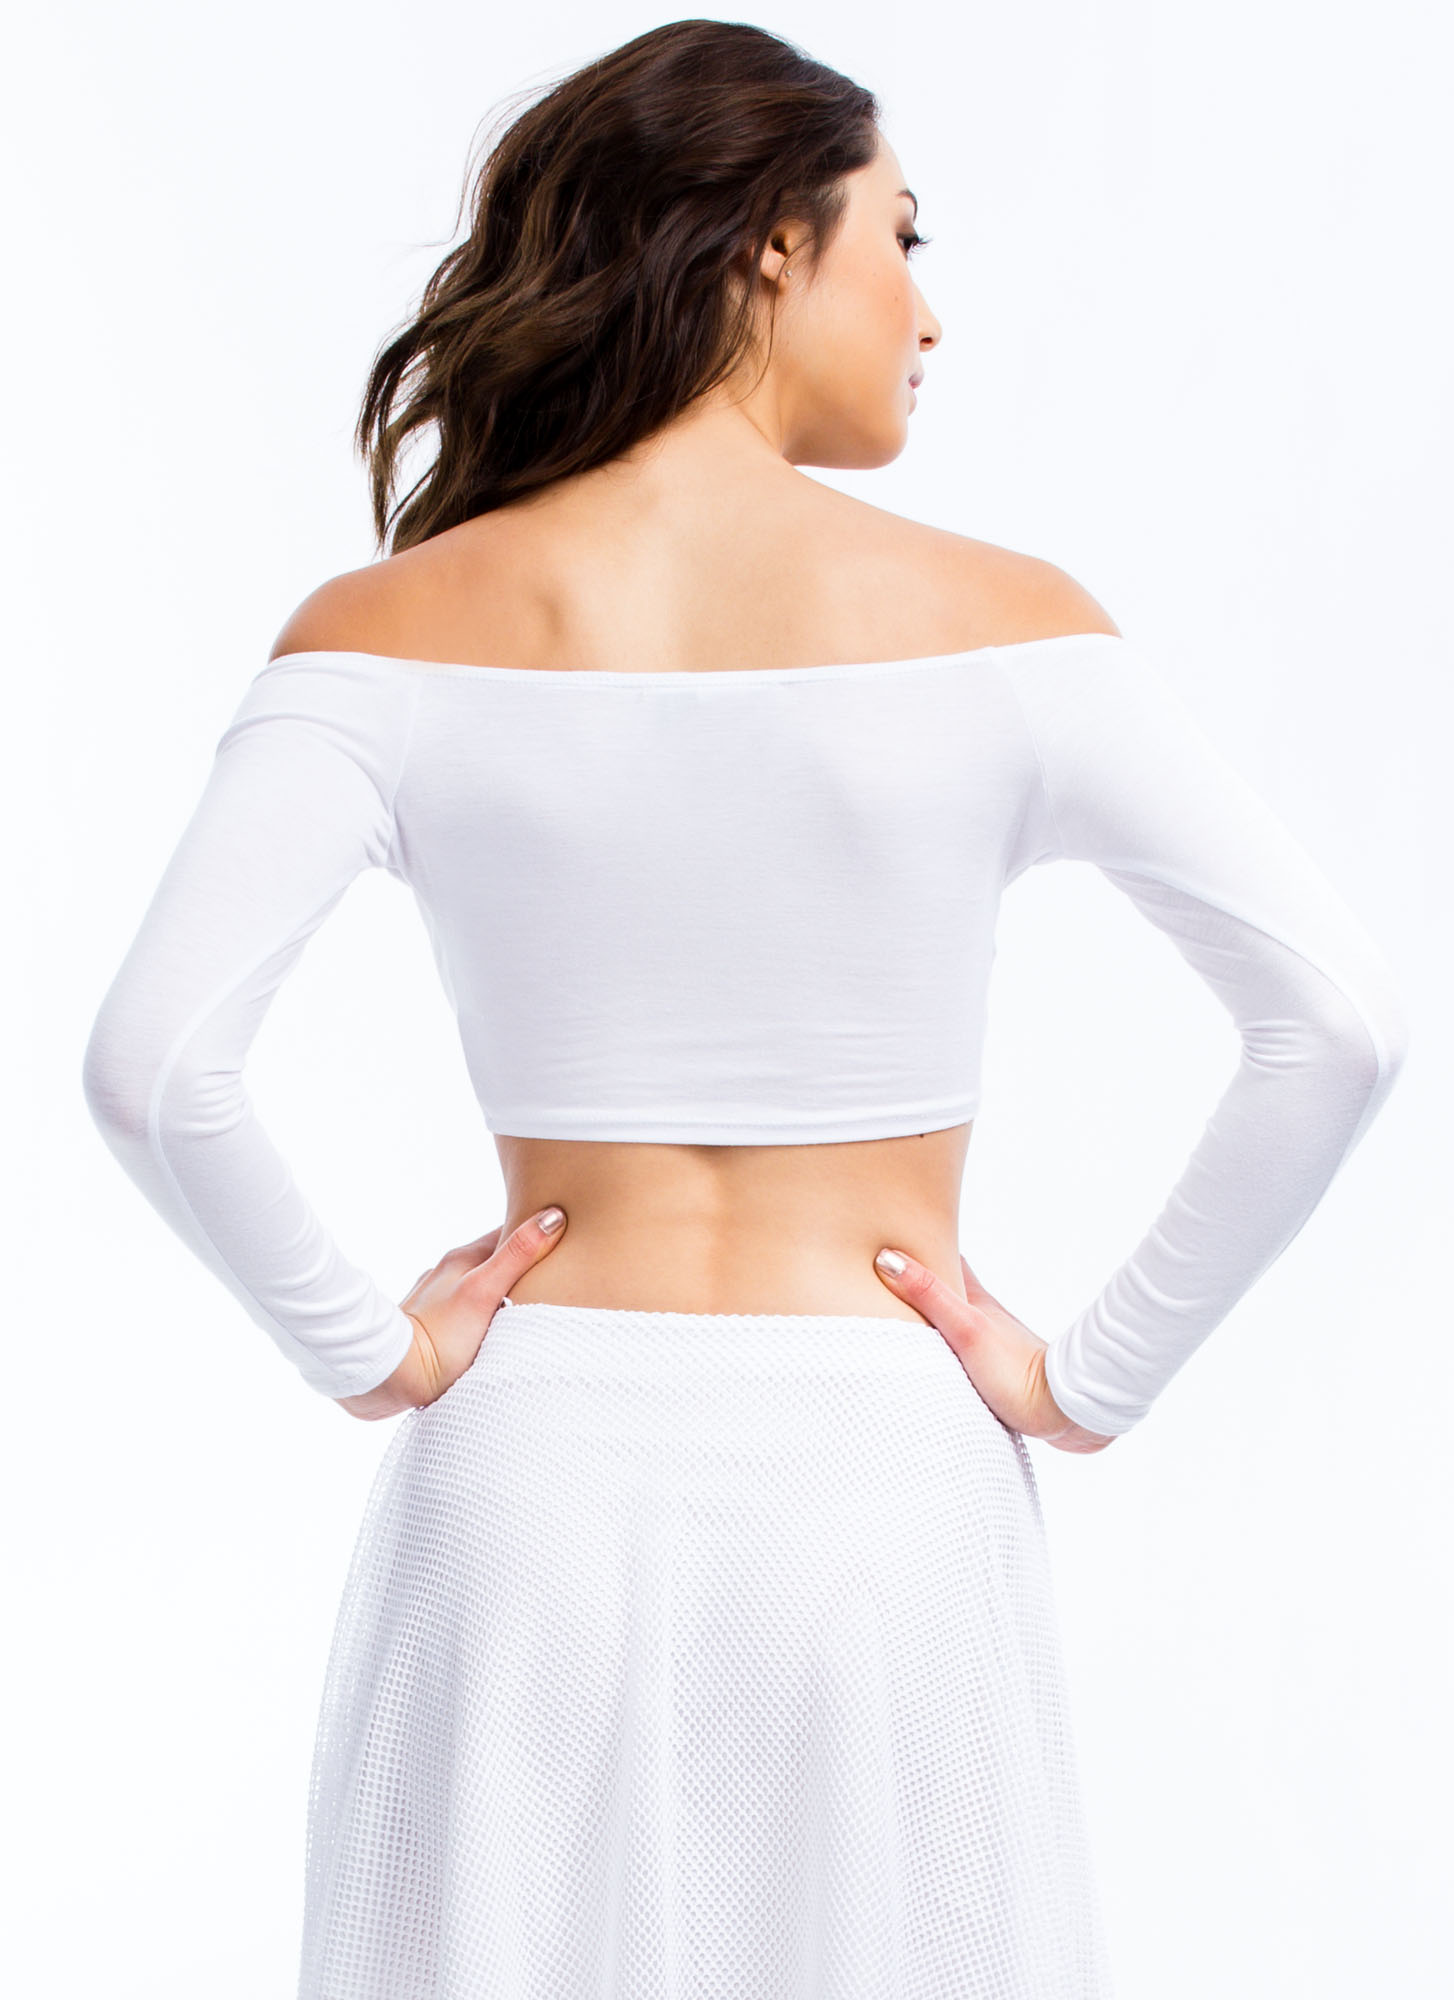 Shrug It Off-Shoulder Cropped Top WHITE